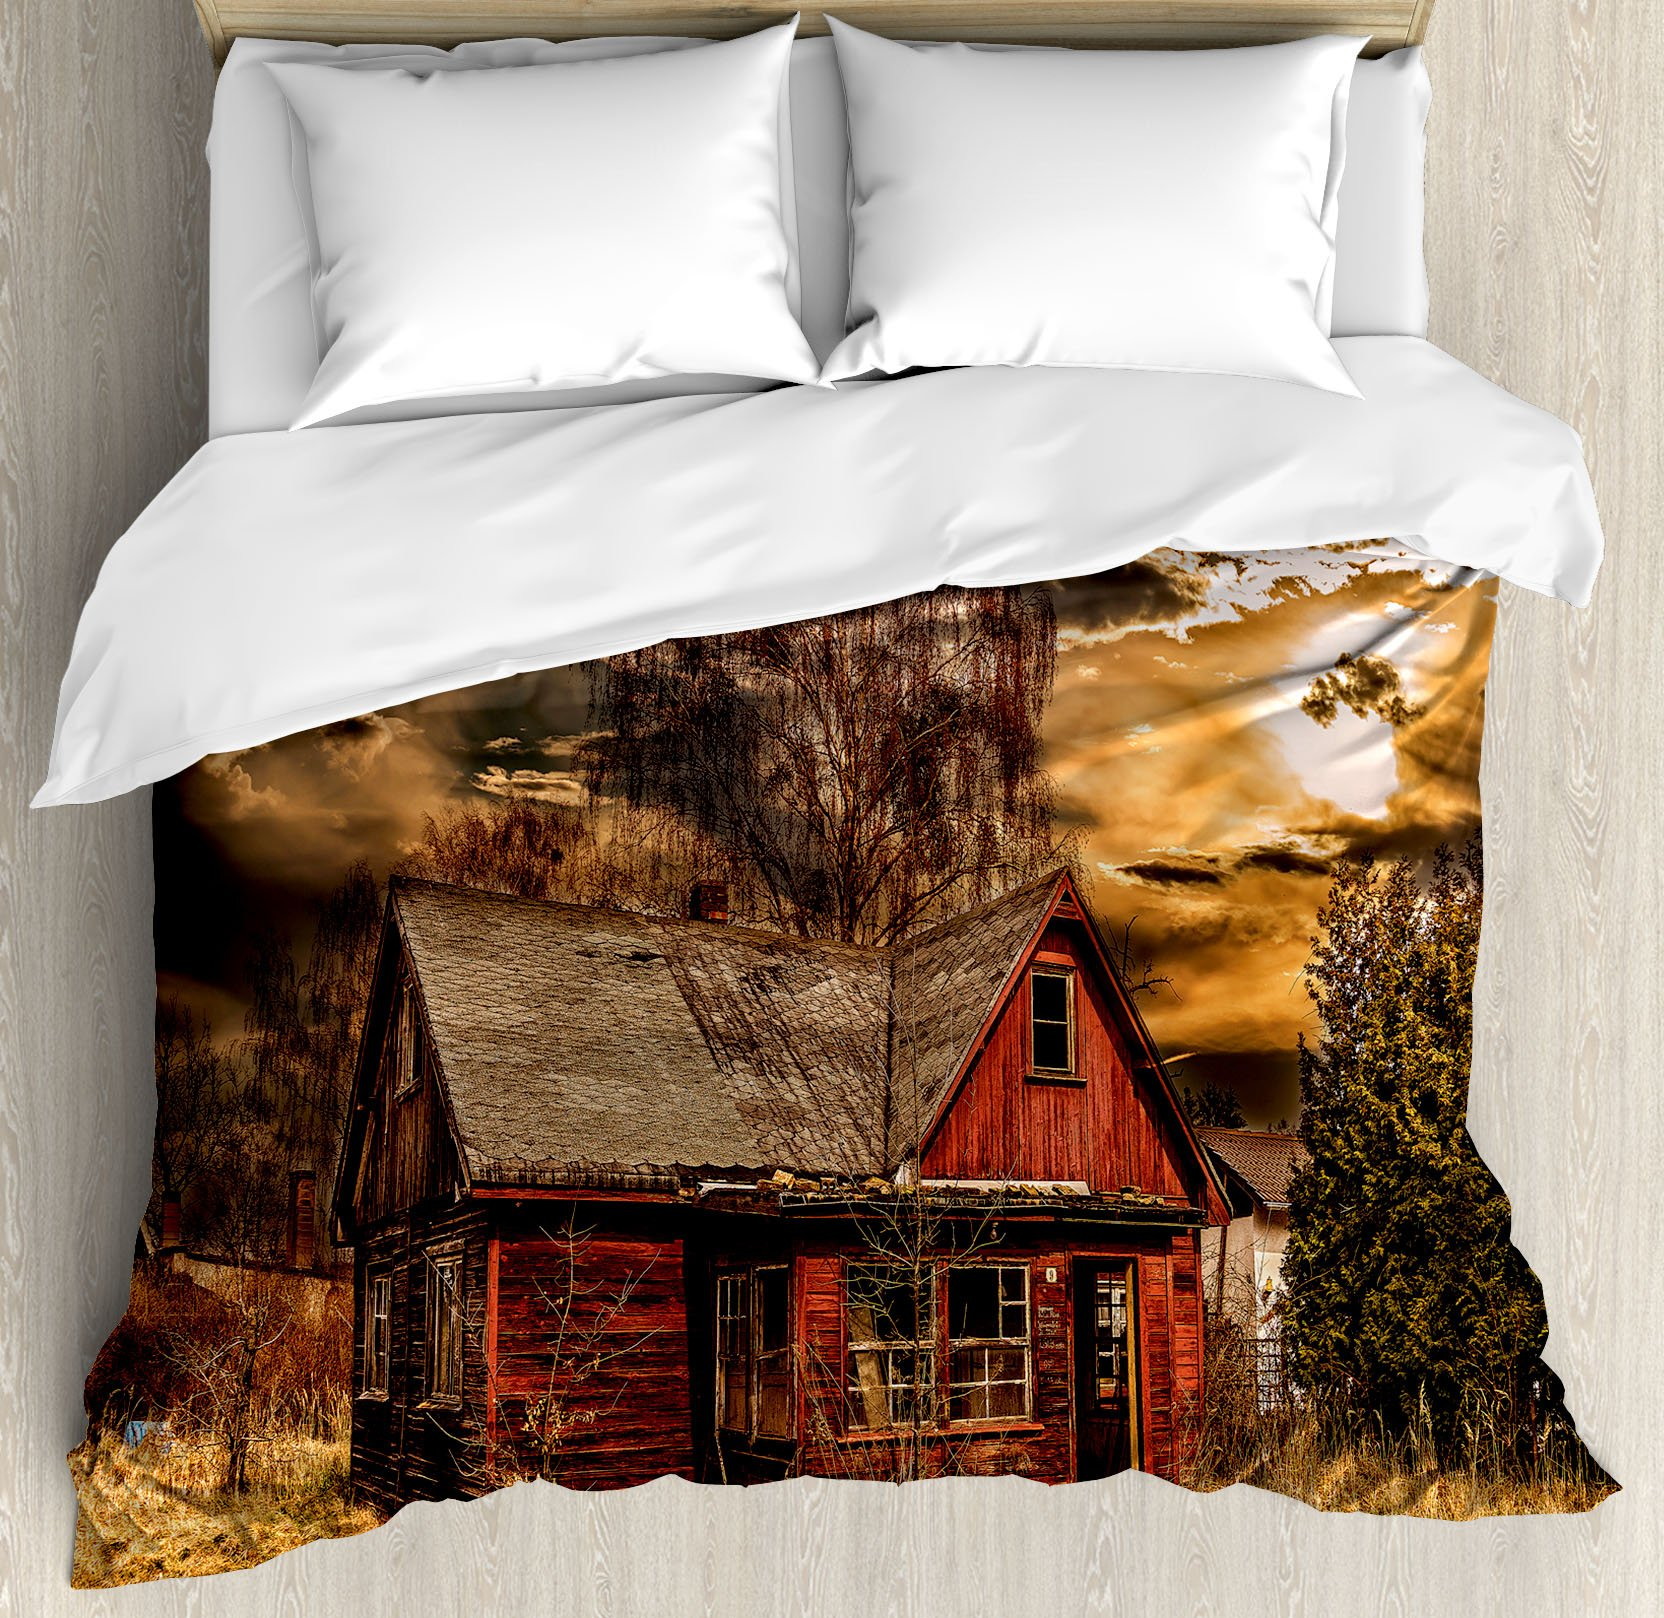 Scenery Decor Duvet Cover Set by Ambesonne, Scary Horror Movie Themed Abandoned House in Pale Grass Garden Sunset Photo, 3 Piece Bedding Set with Pillow Shams, Queen / Full, Multicolor